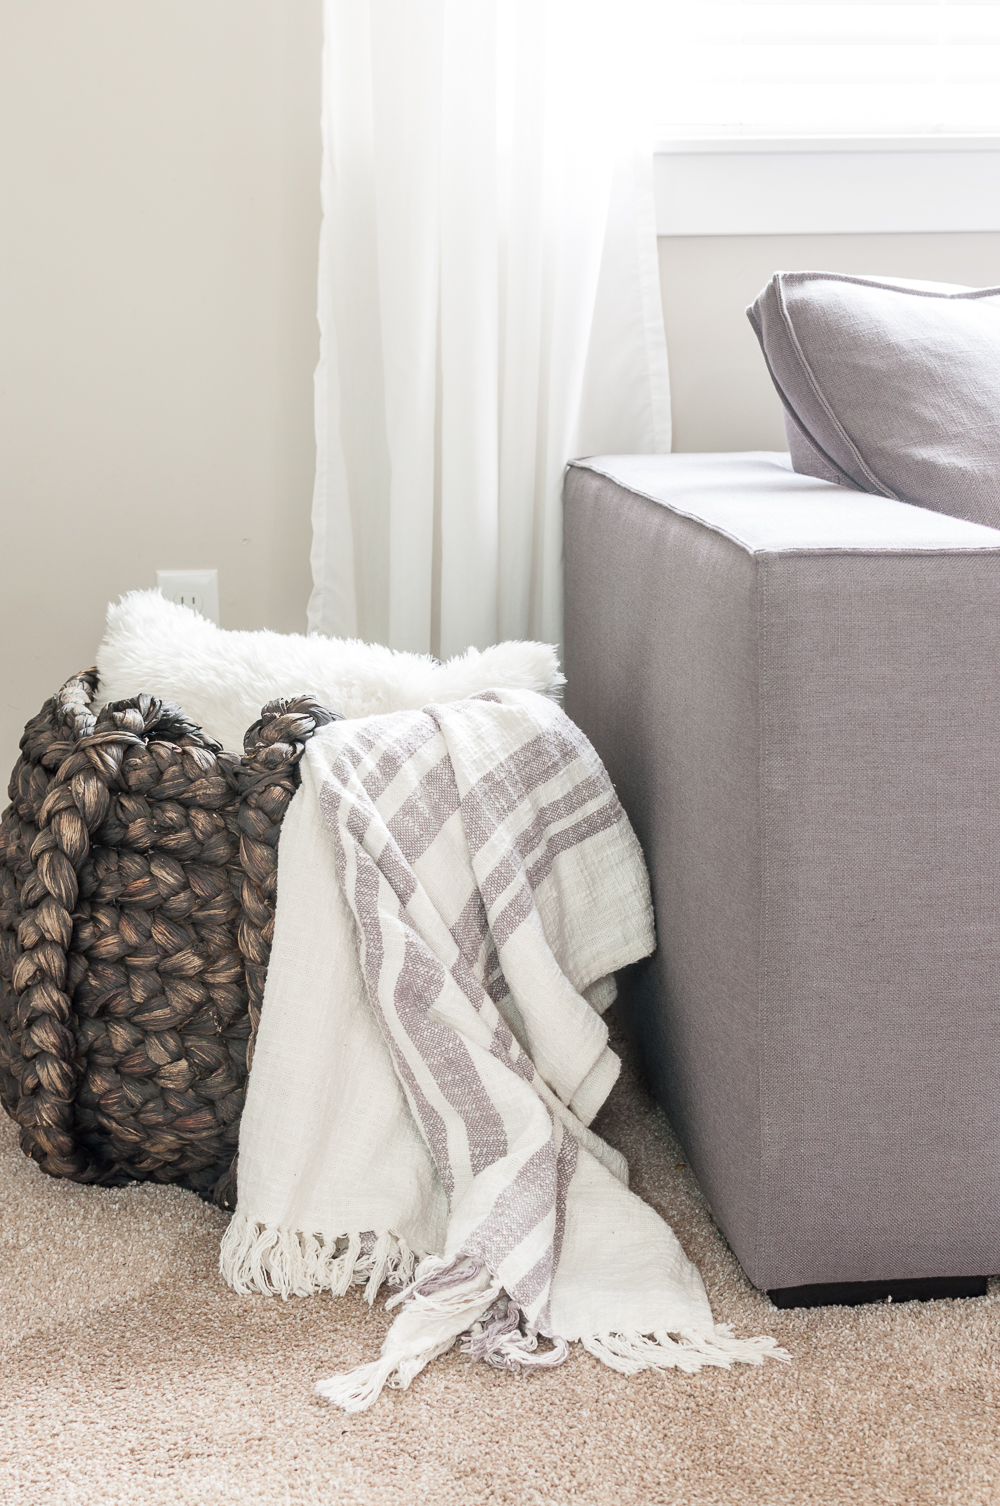 bring in warm textures to a minimalist living room to provide a cozy element that feels like home.